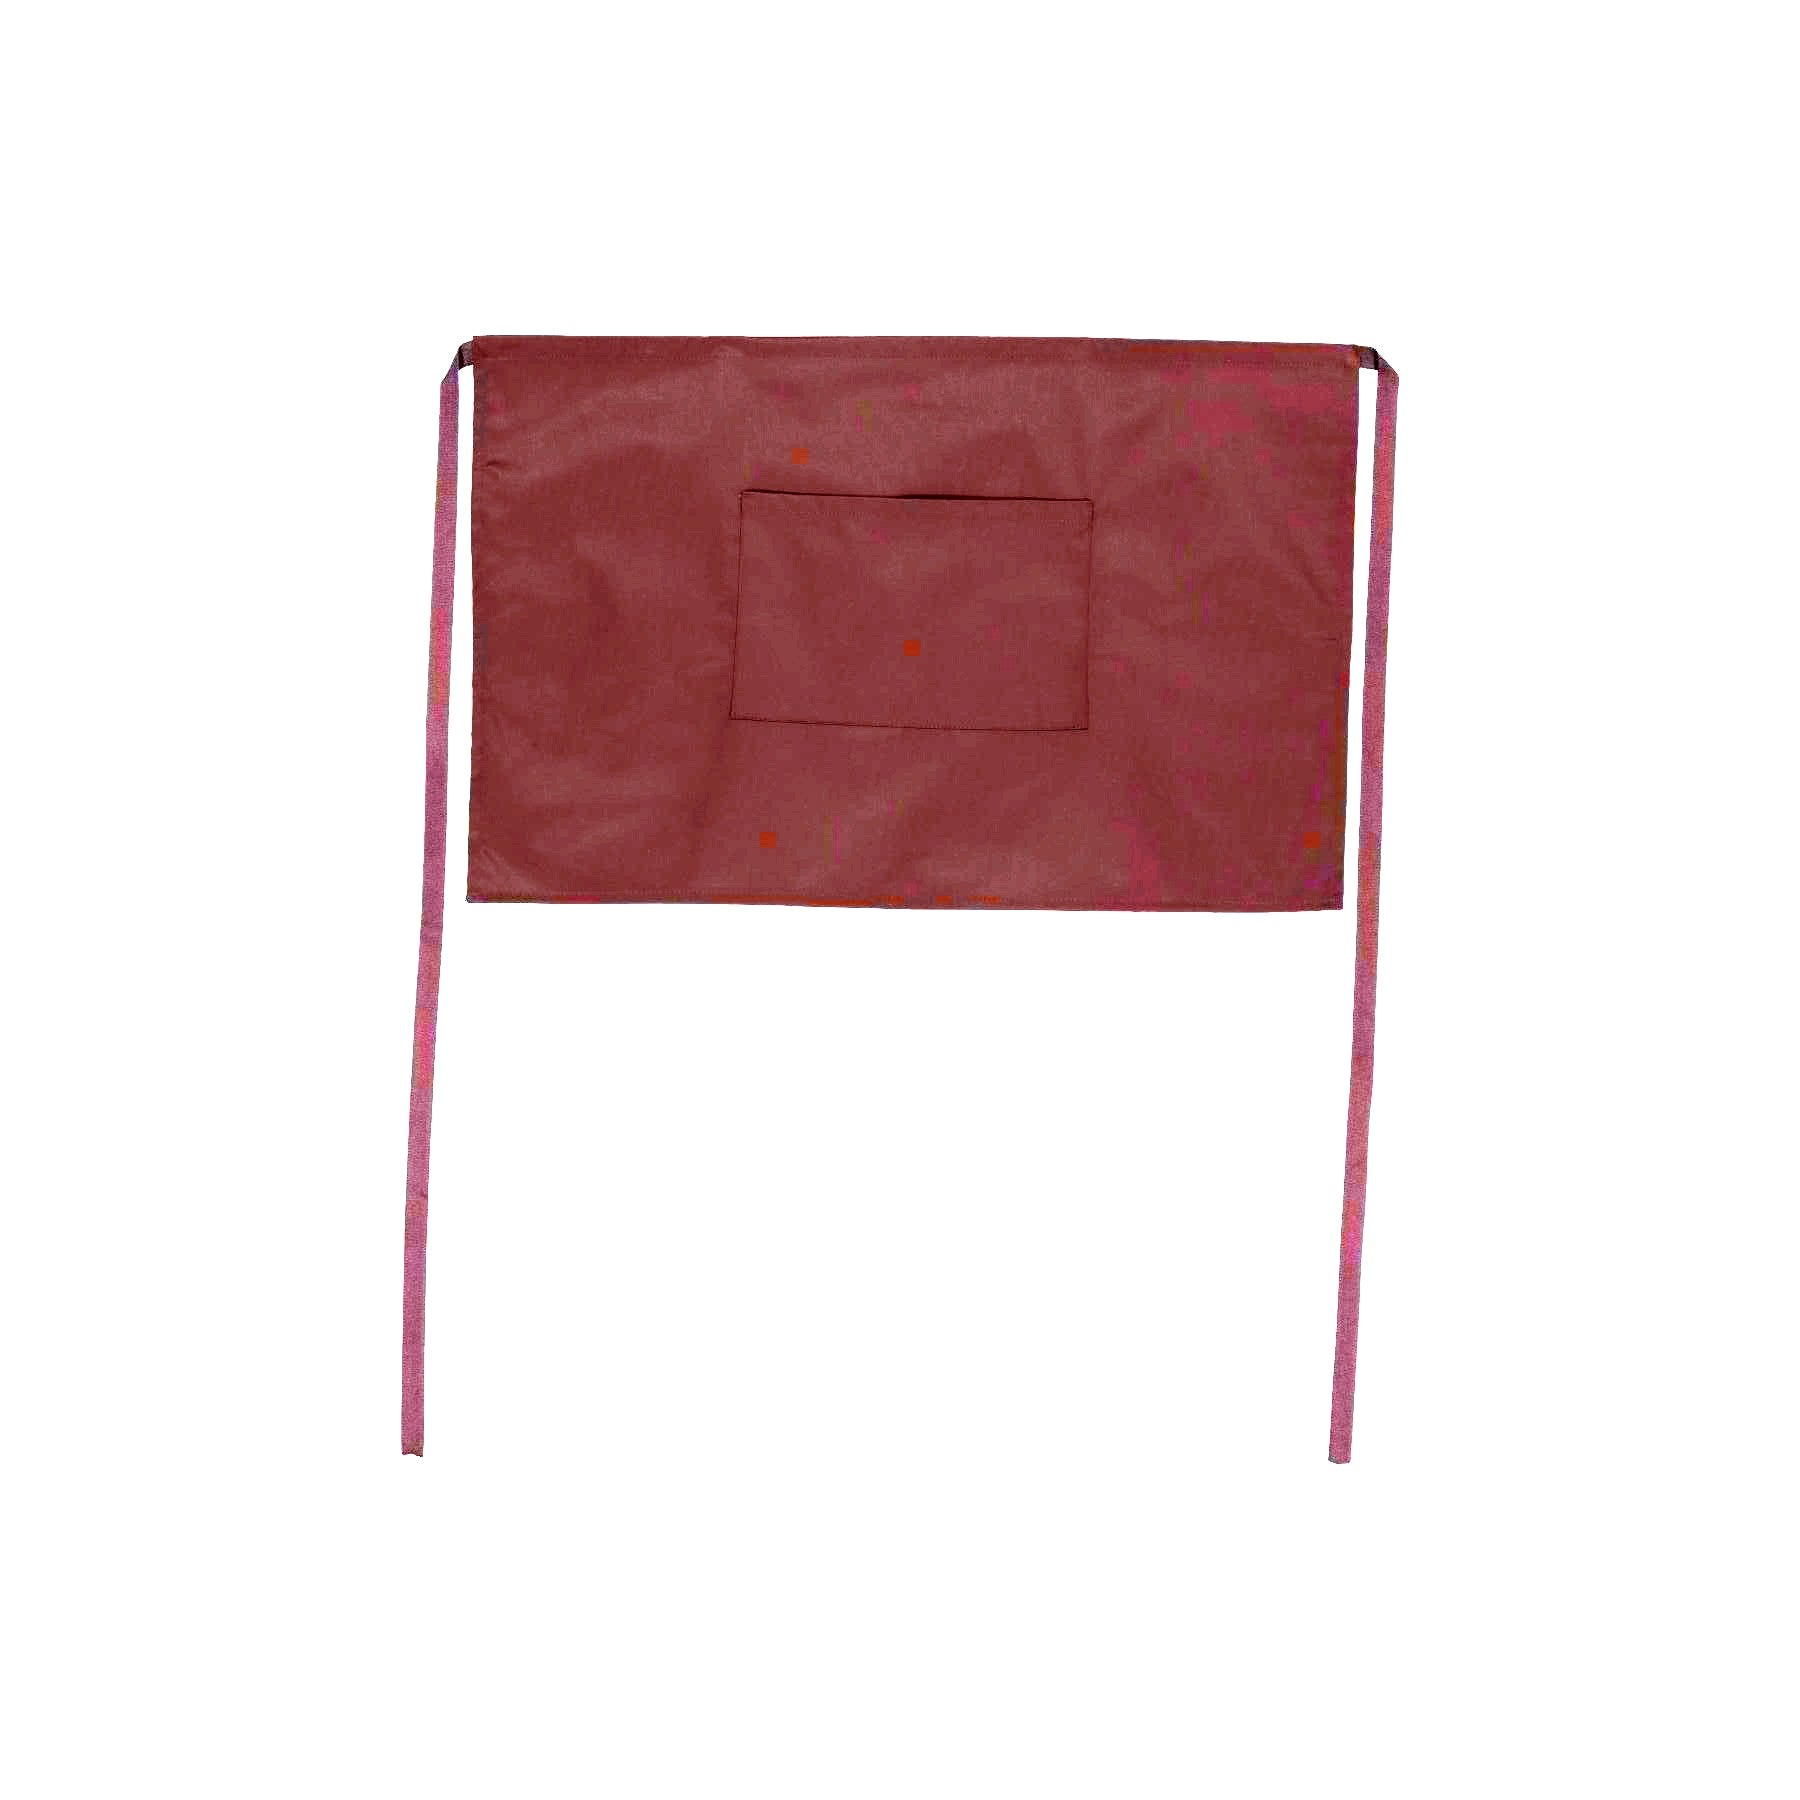 NZ Made 1/2 Waist Apron with Pocket - Burgundy